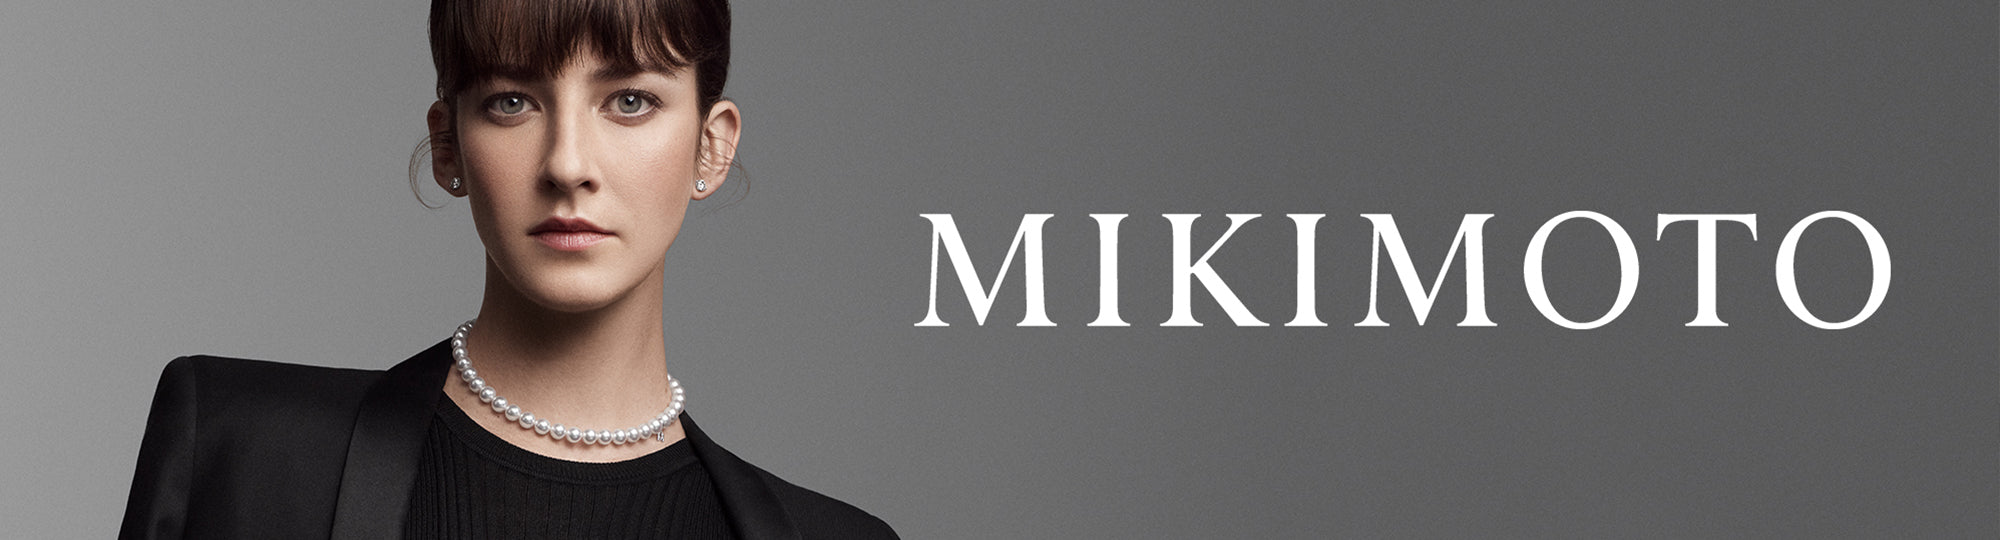 Mikimoto Pearl Jewelry | Authorized Retailer - Manfredi Jewels